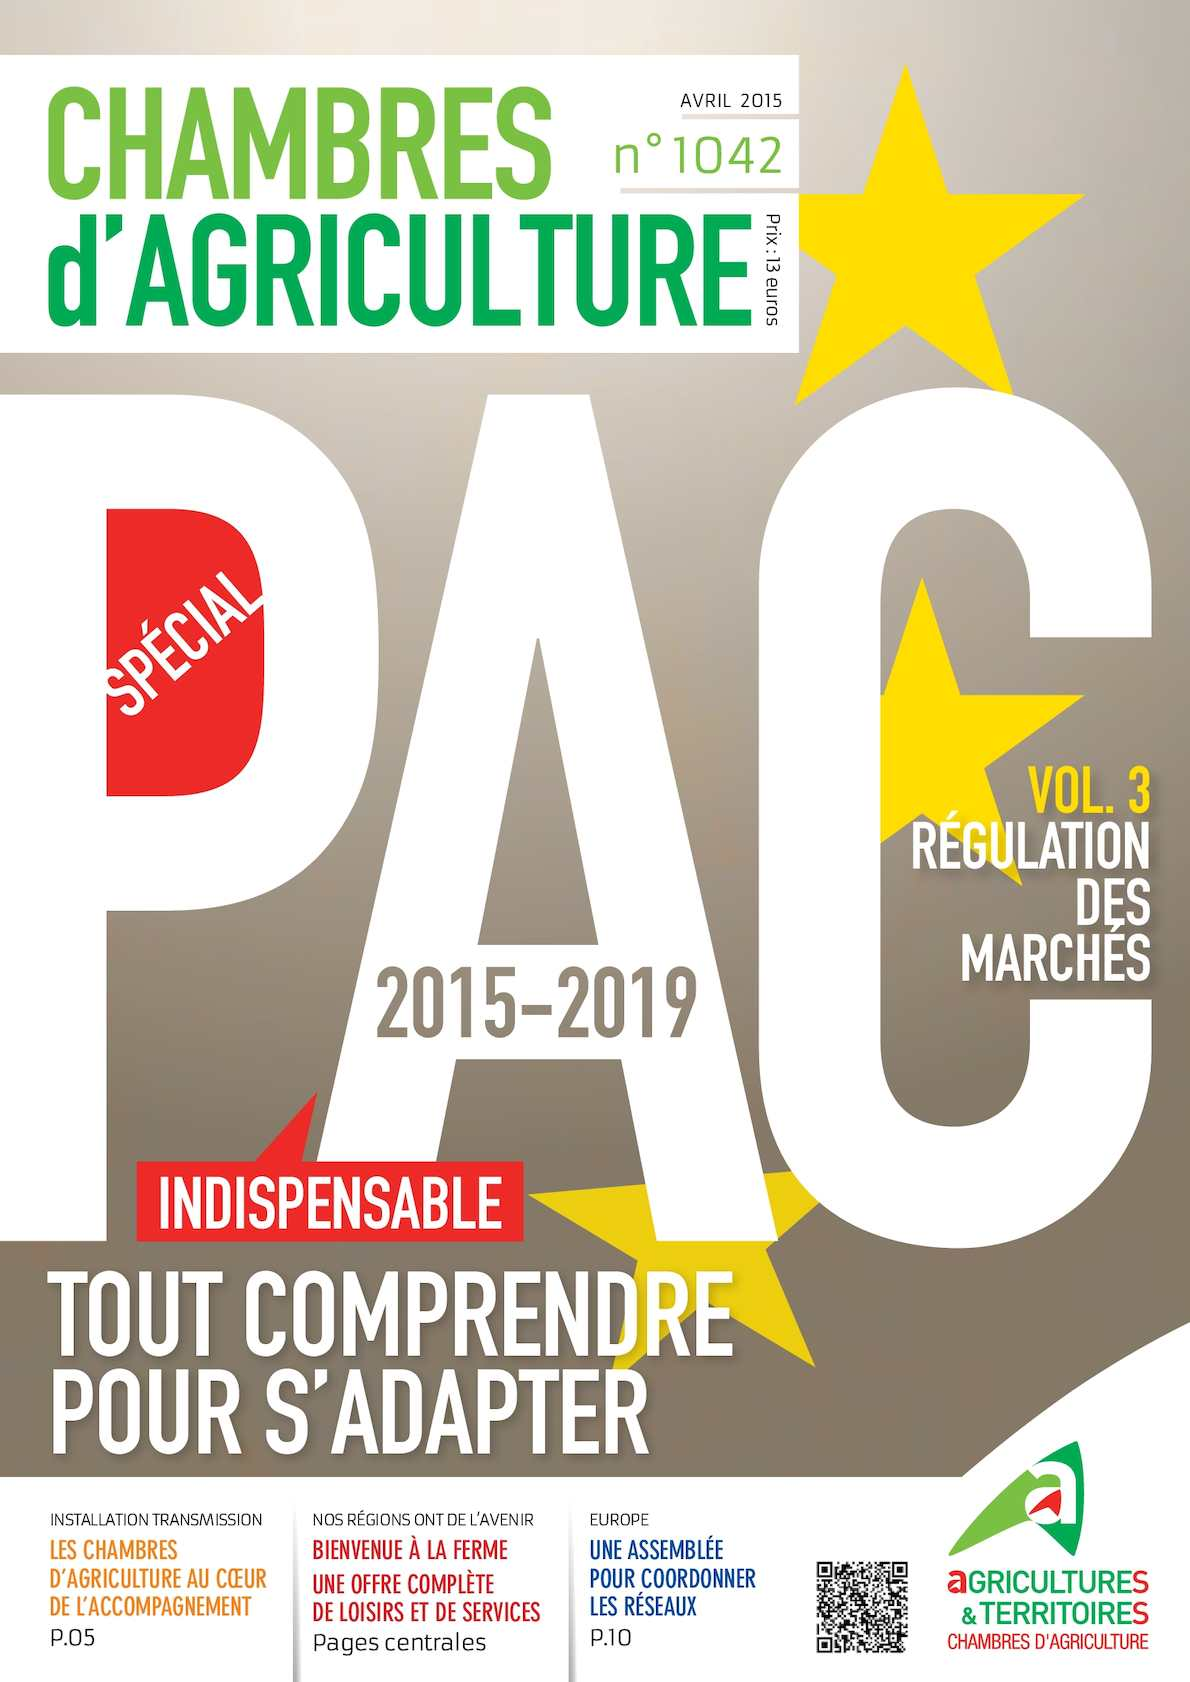 Calam o revue chambres agriculture 1042 avril 2015 for Chambre agriculture 13